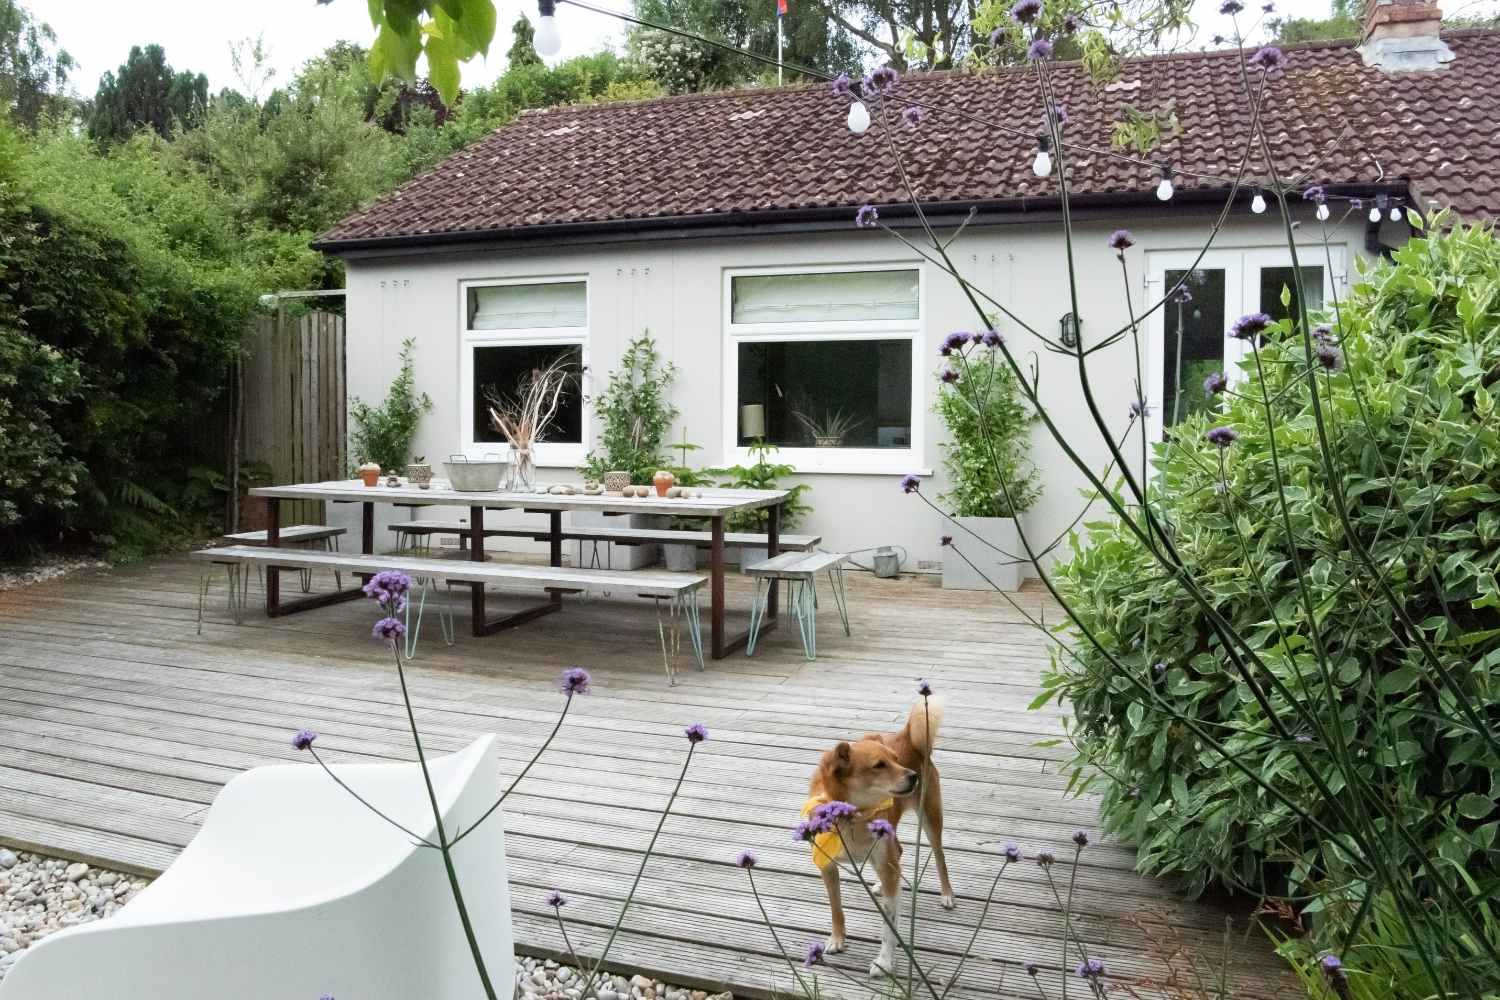 Loads of space on the outdoor terrace